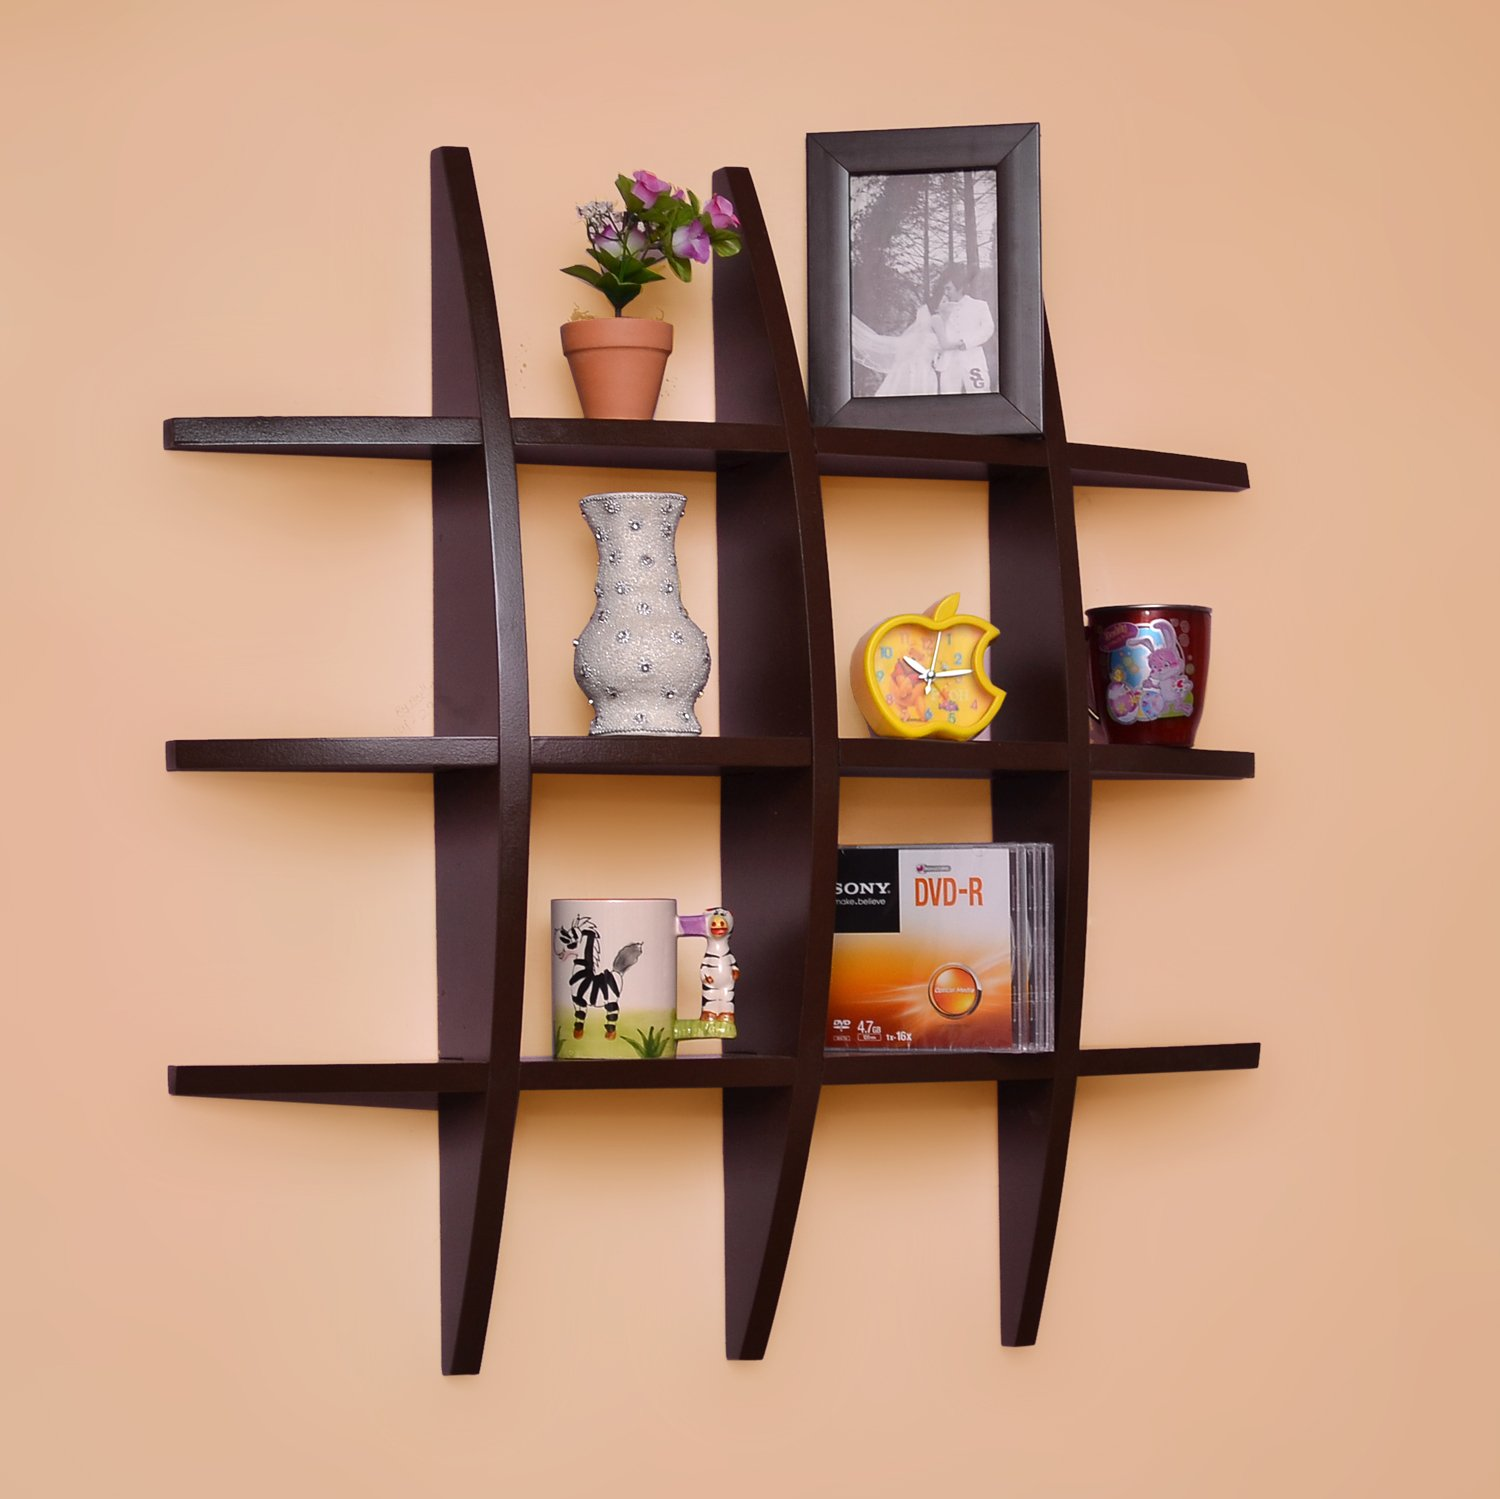 Wall Shelves: Buy Wall Shelves online at best prices in India ...